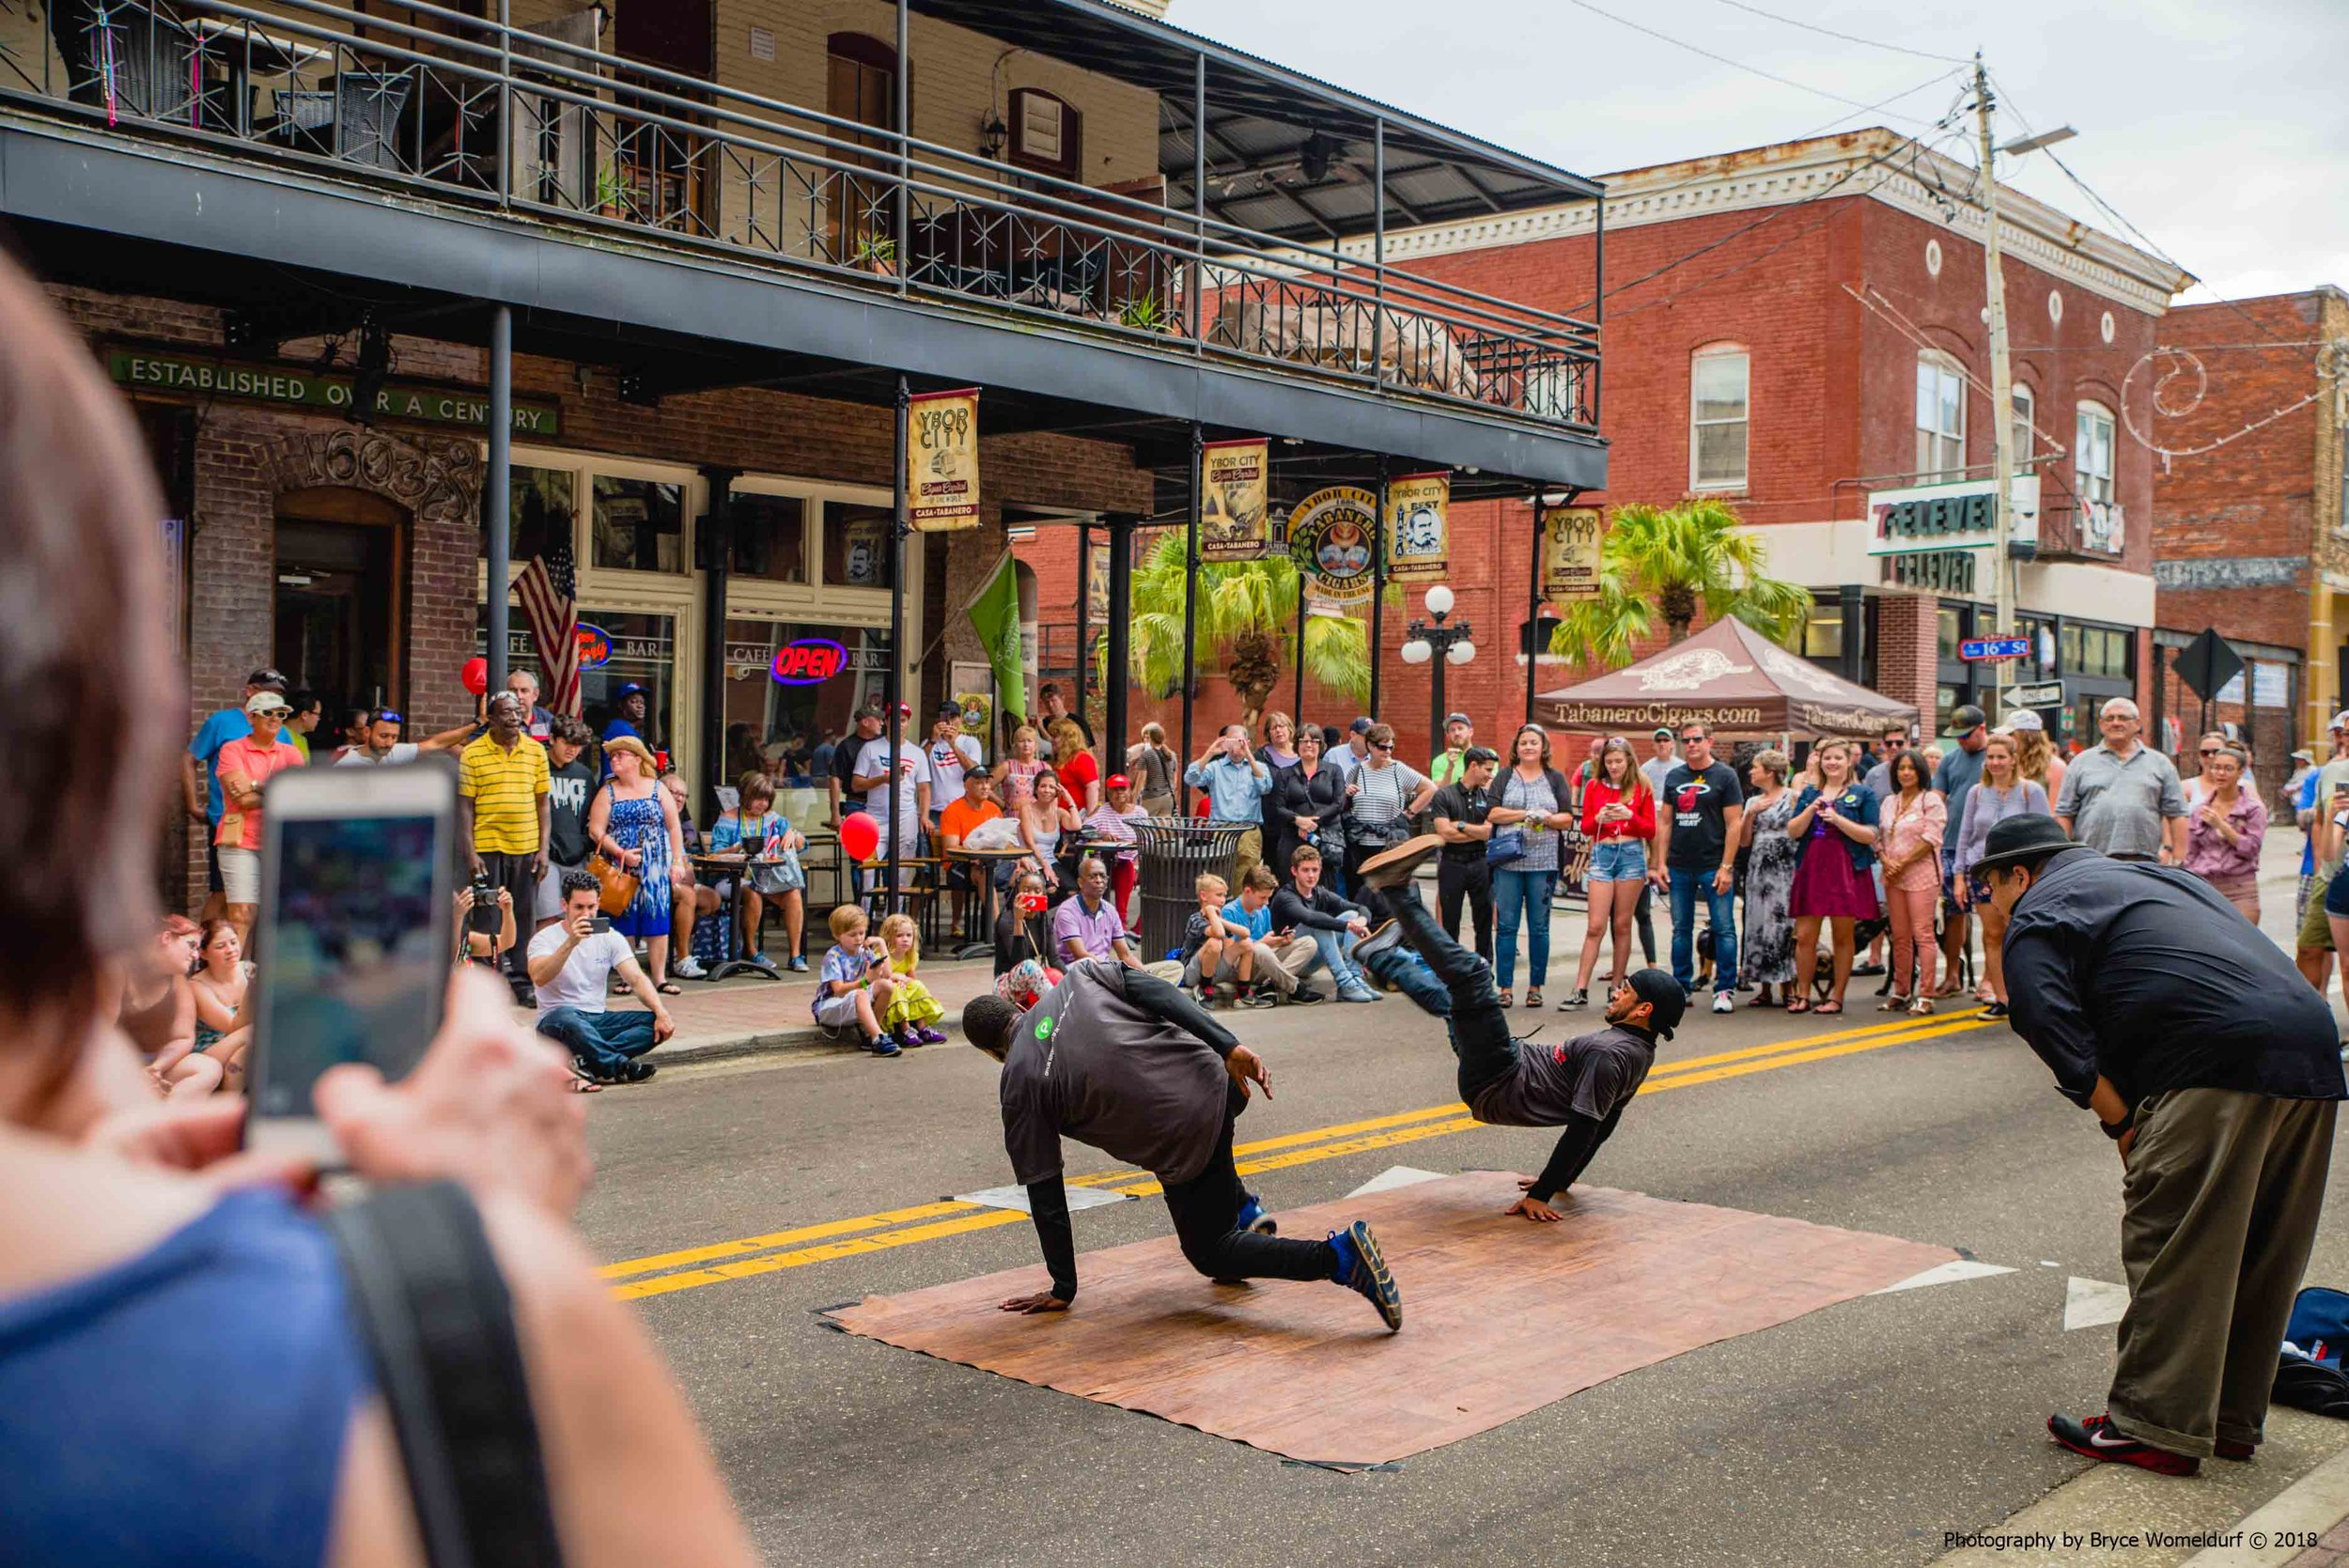 Breakdancing in the streets | Ybor City, Florida